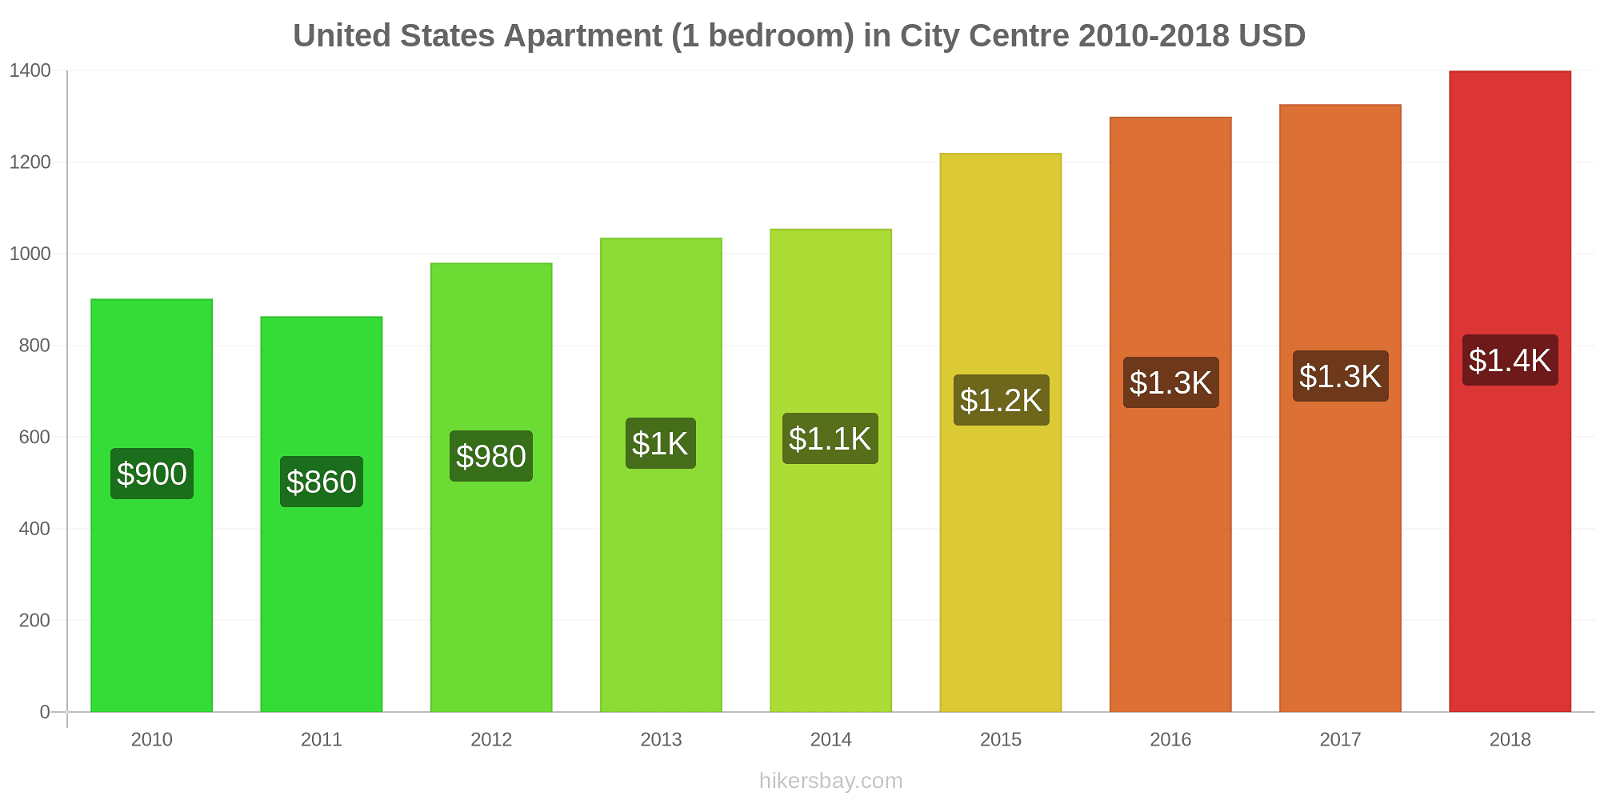 United States price changes Apartment (1 bedroom) in City Centre hikersbay.com